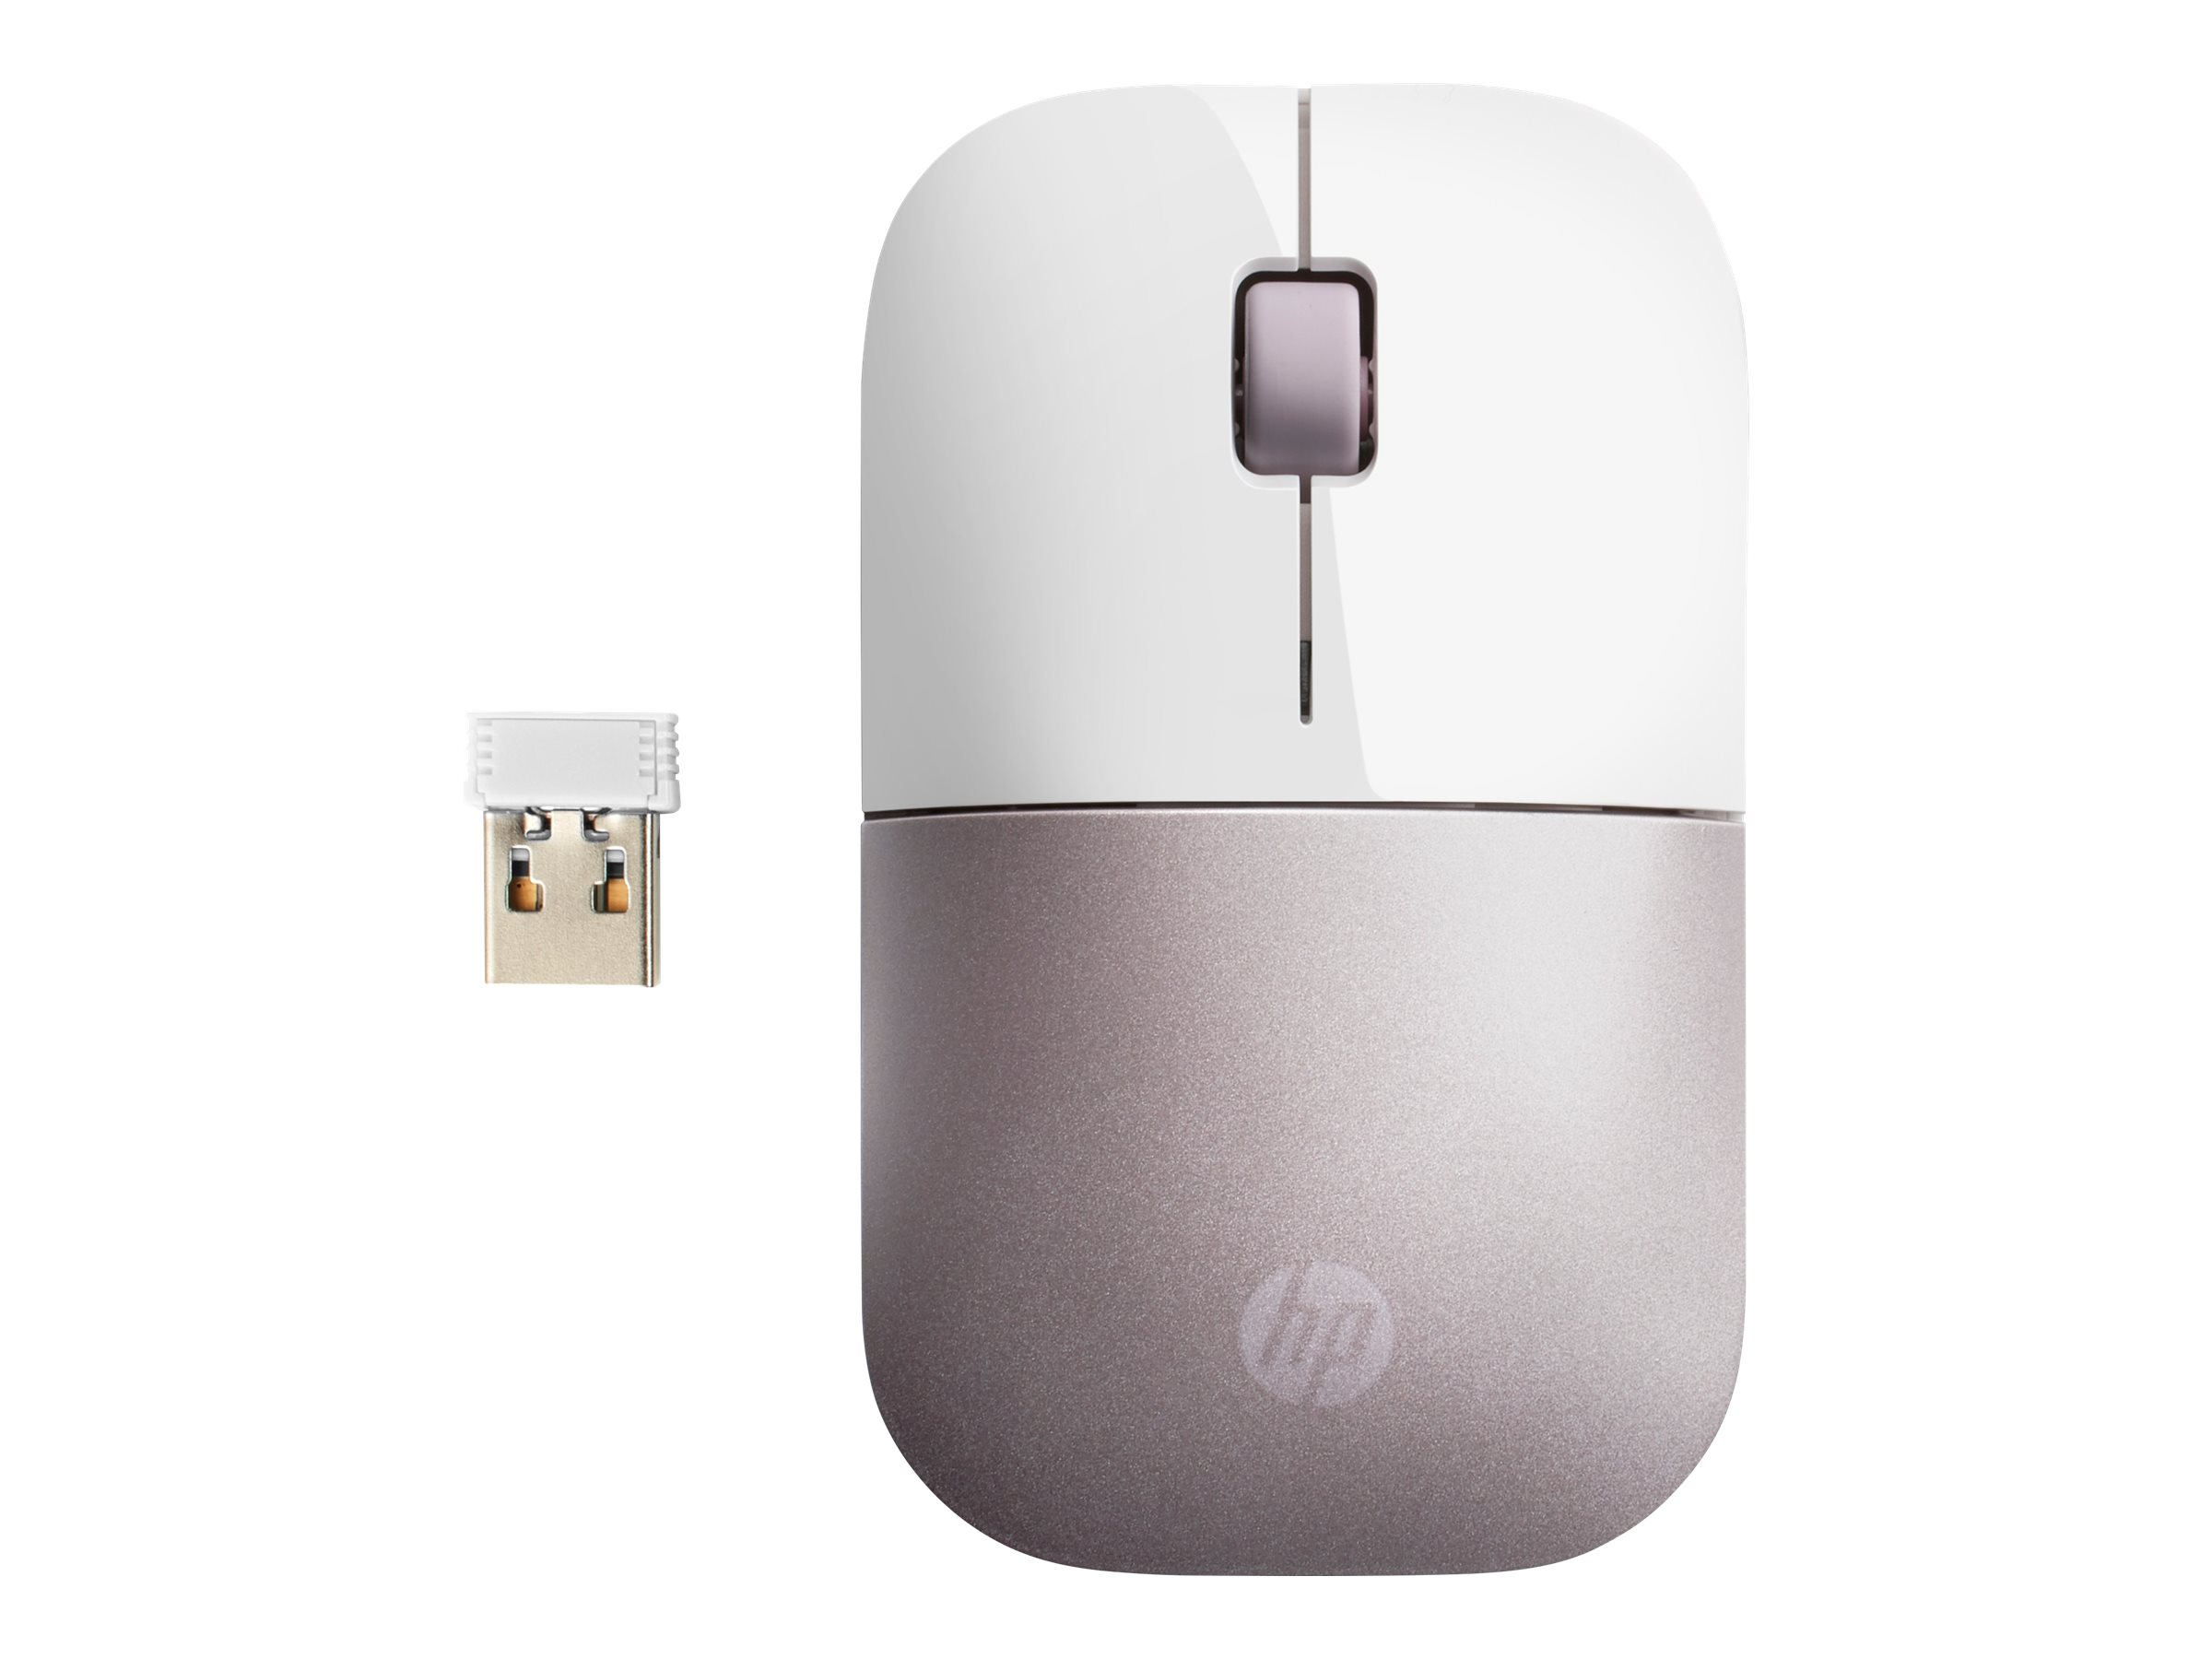 HP Inc. HP Z3700 Wireless Maus | Pink 4VY82AA#ABB